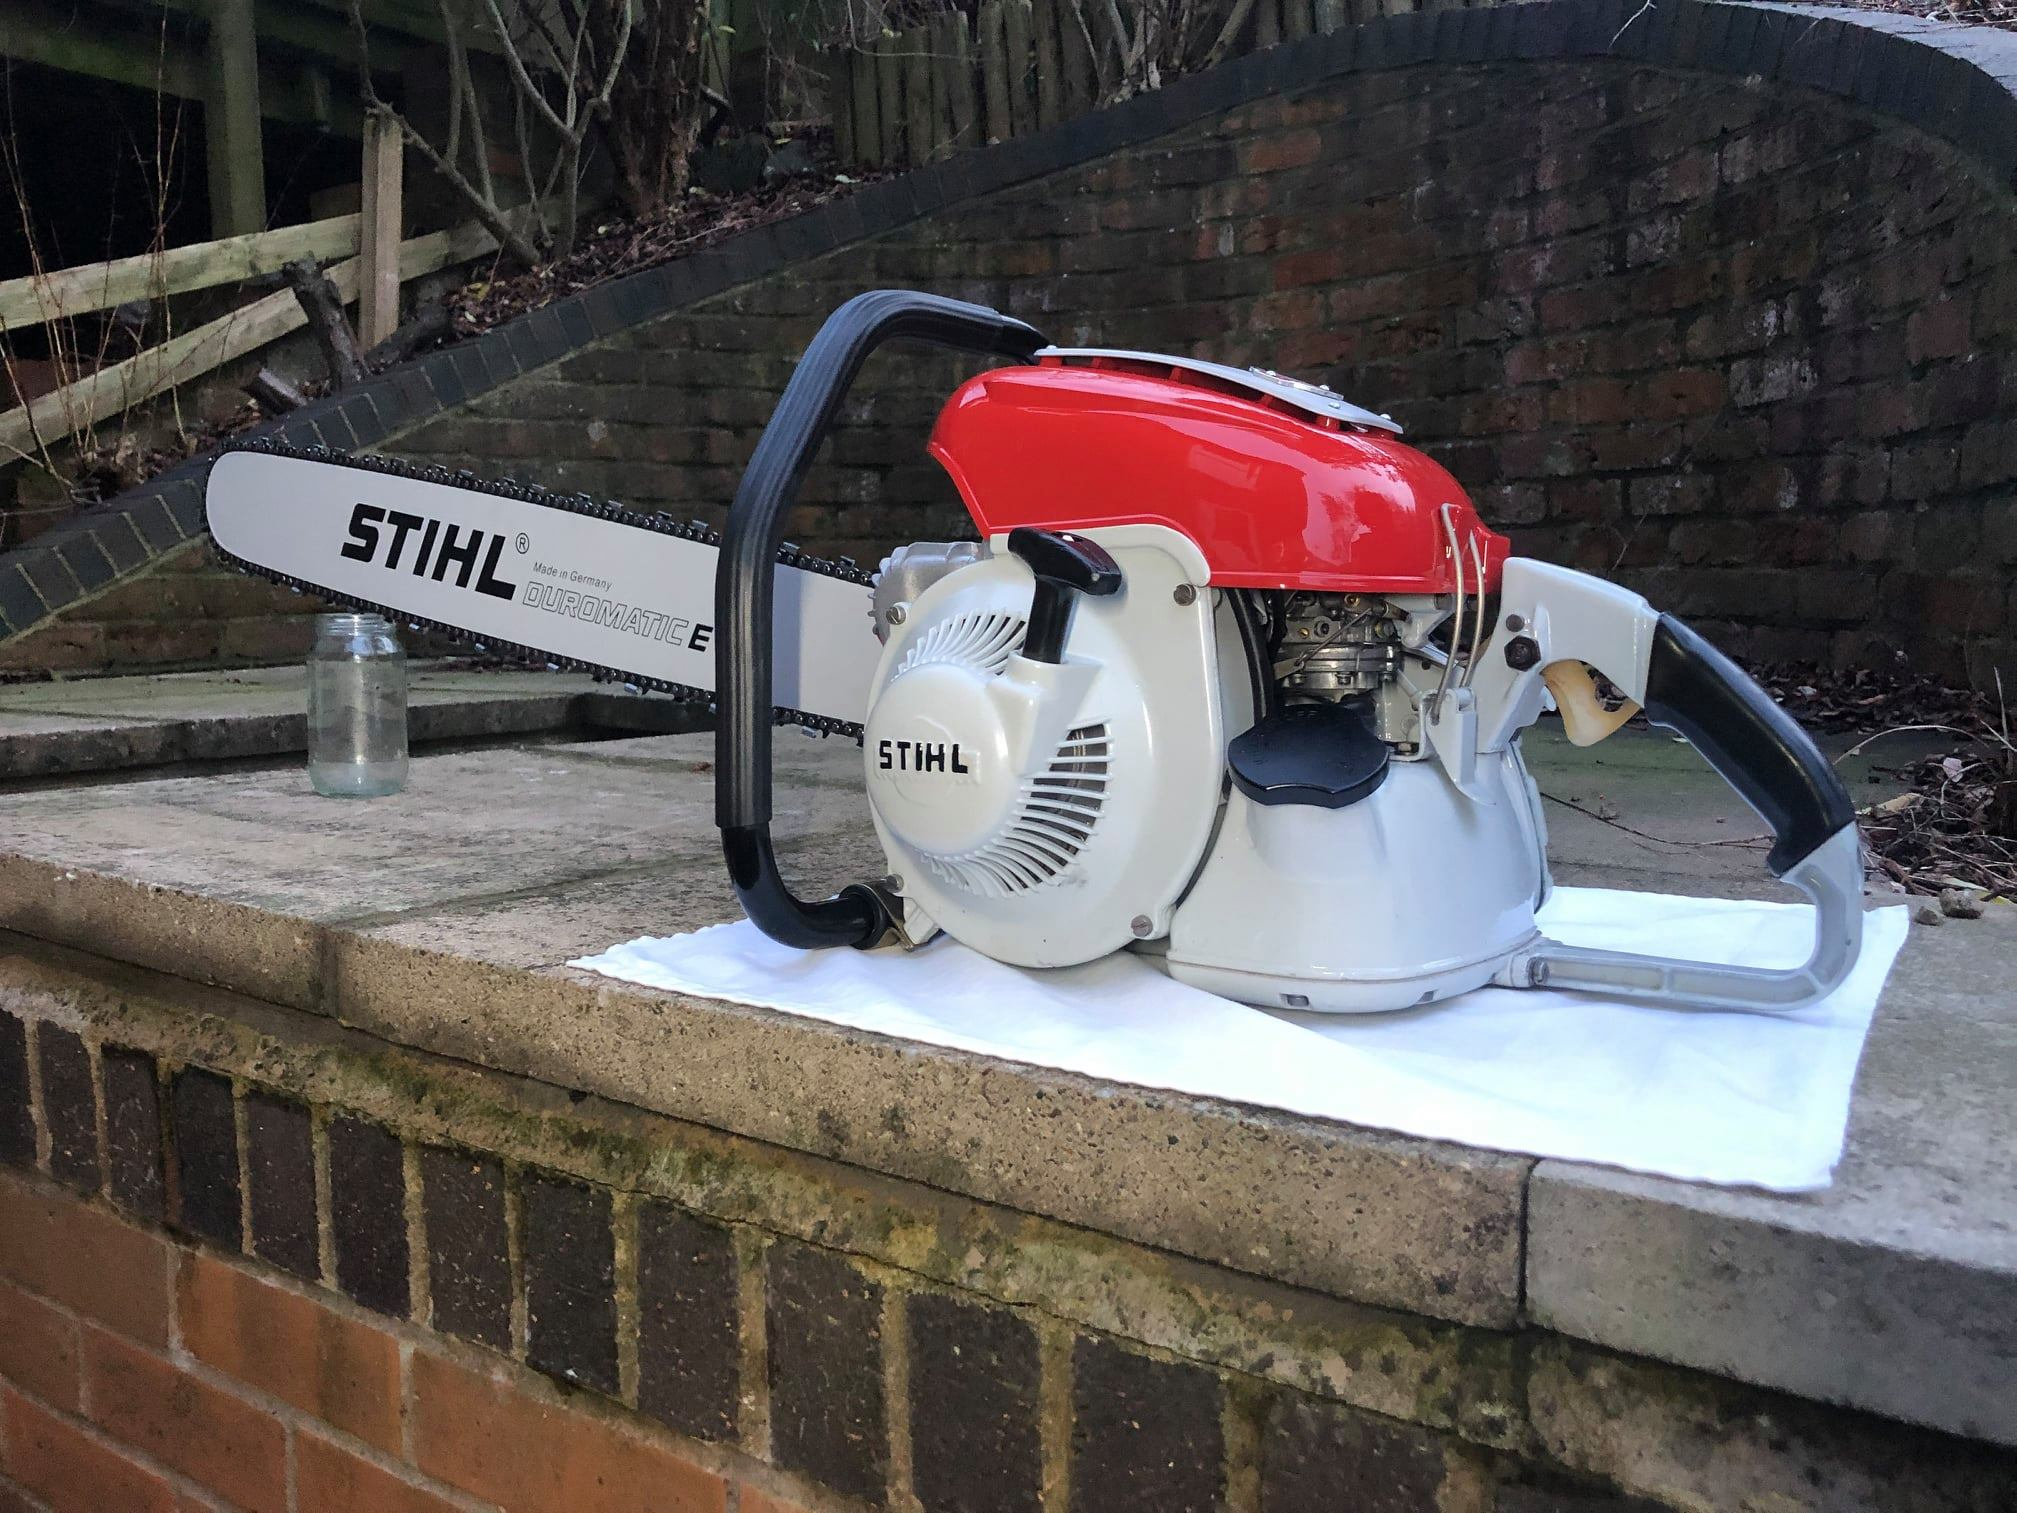 Stihl chainsaw production years from 1950 to today